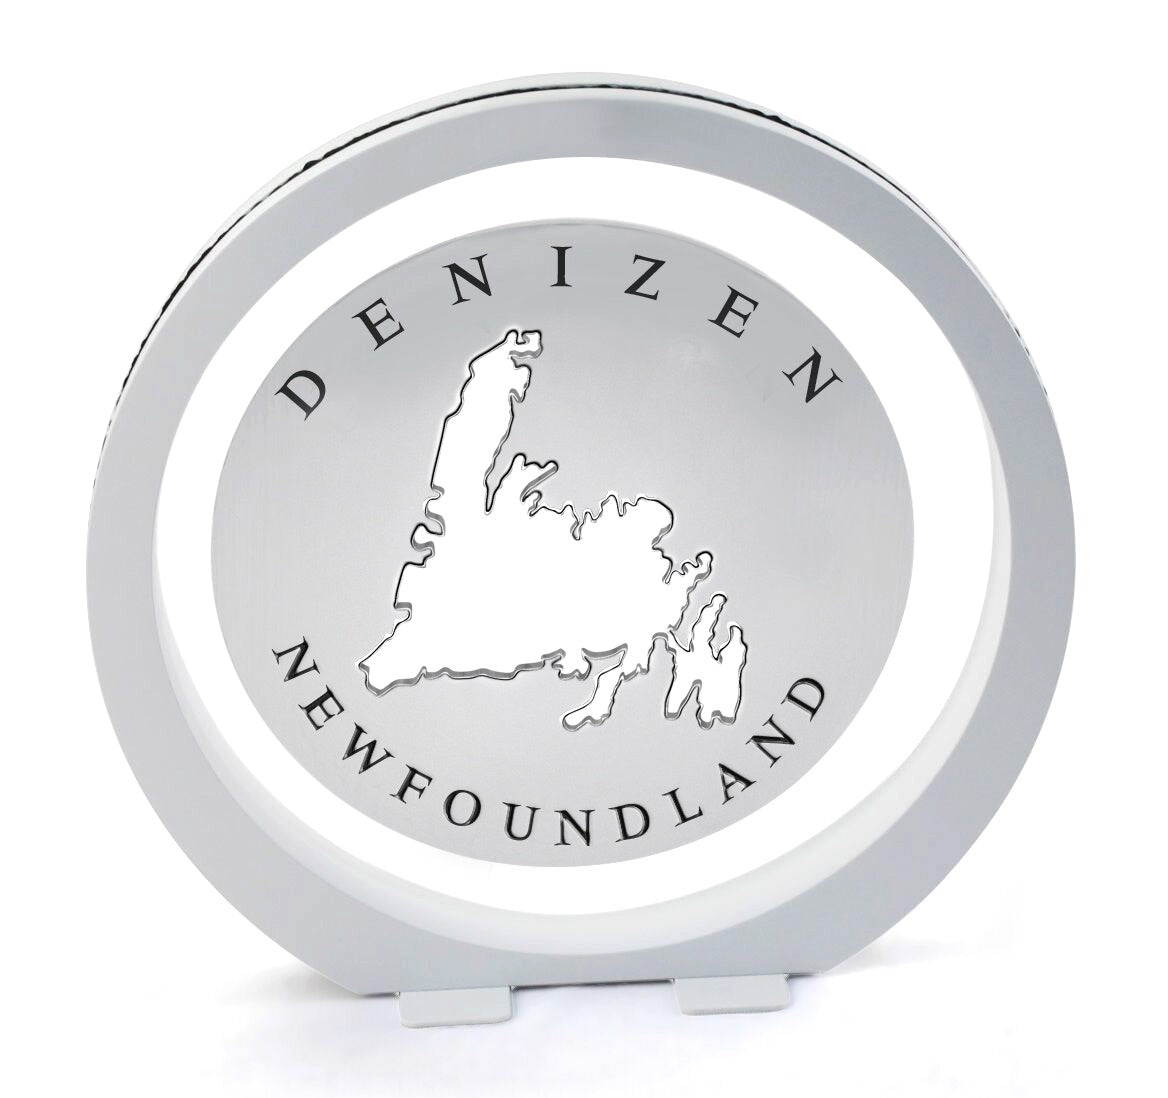 denizen disc display of newfoundland